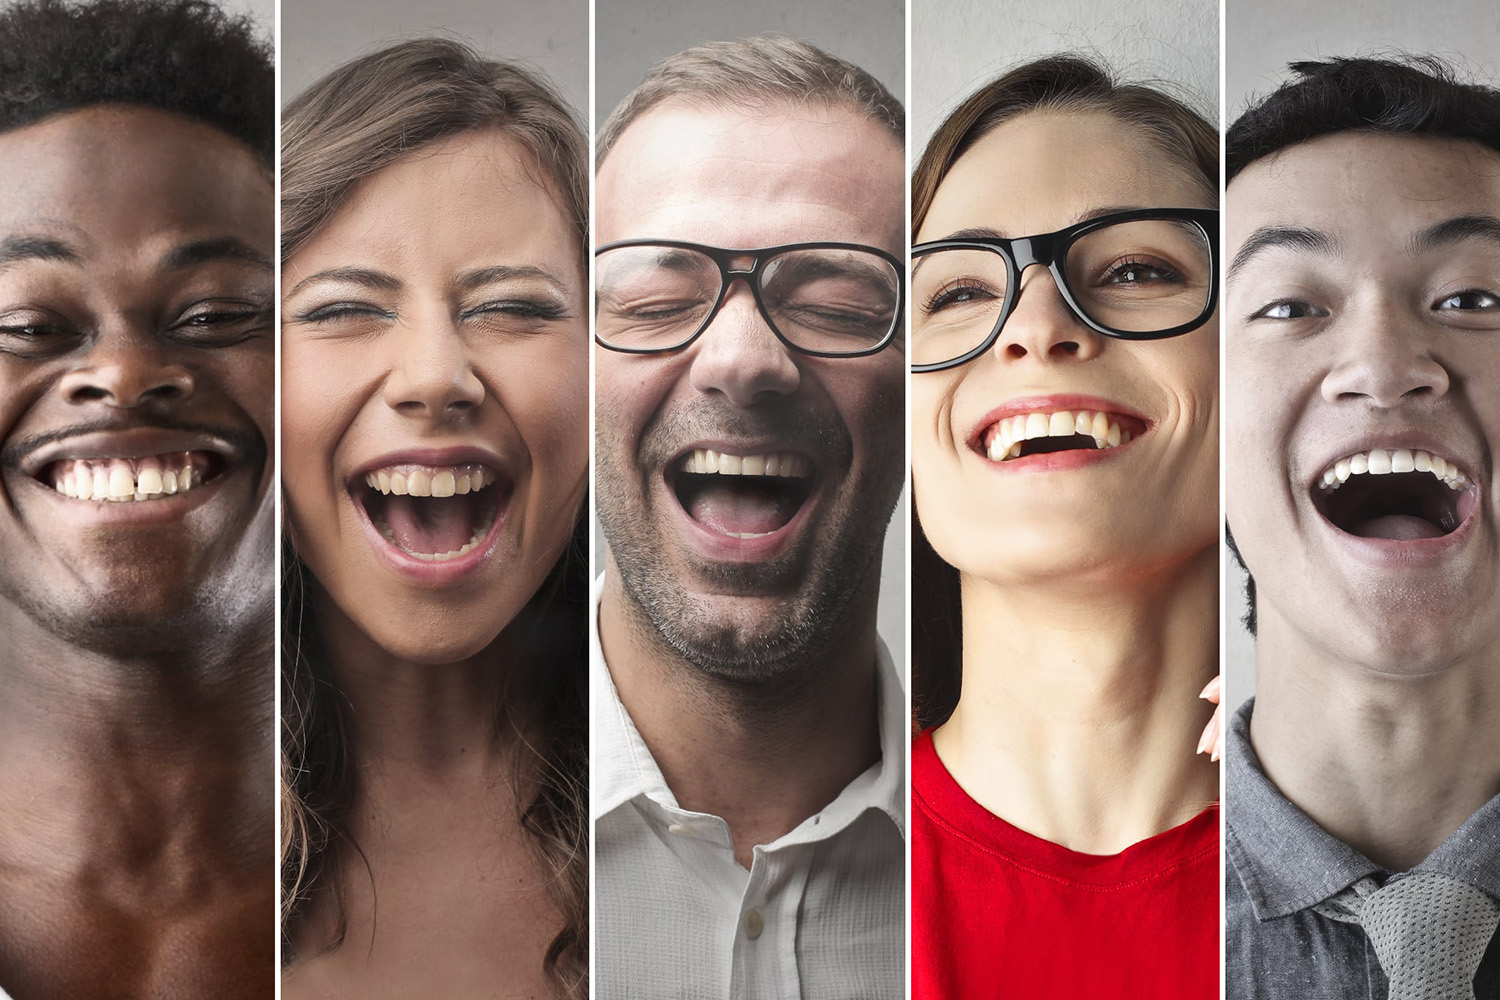 Laughter, Health, and God's Law